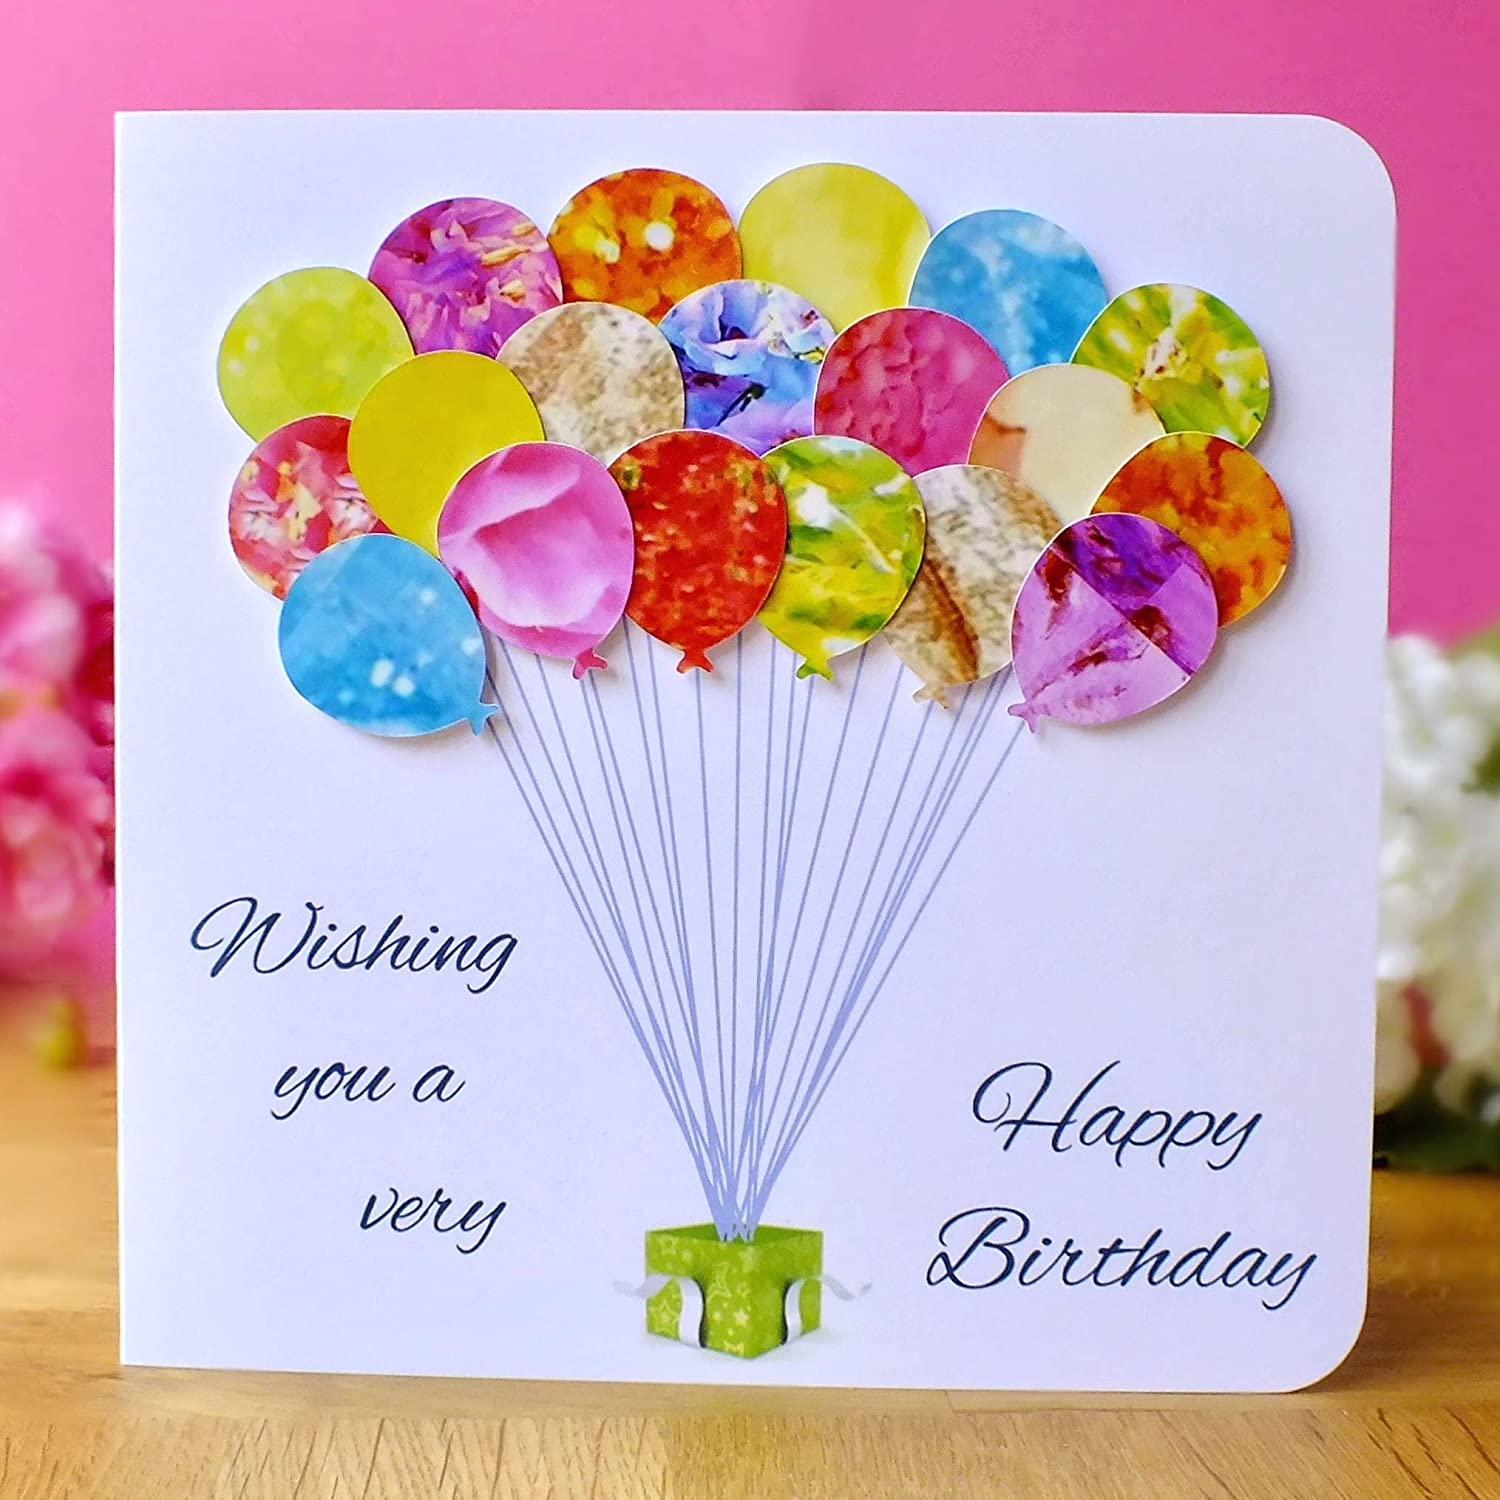 Happy Birthday to a Very Special Daughter Daughter Birthday Card Handmade 3D